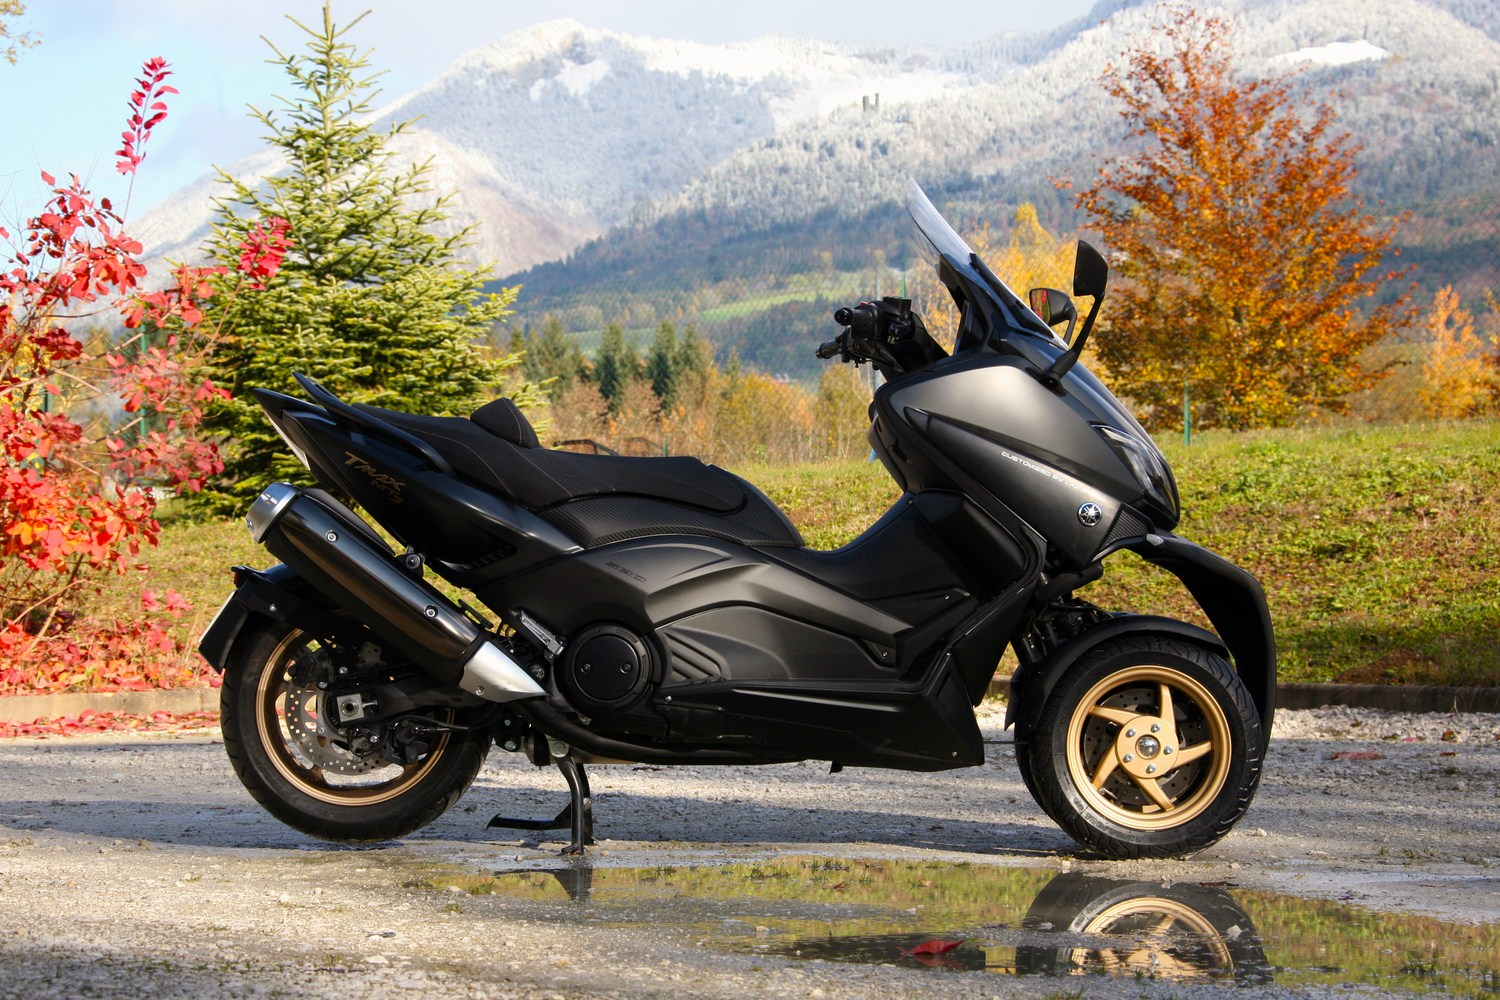 lazareth pr sente le mt3 un scooter yamaha tmax moto magazine leader de l actualit. Black Bedroom Furniture Sets. Home Design Ideas